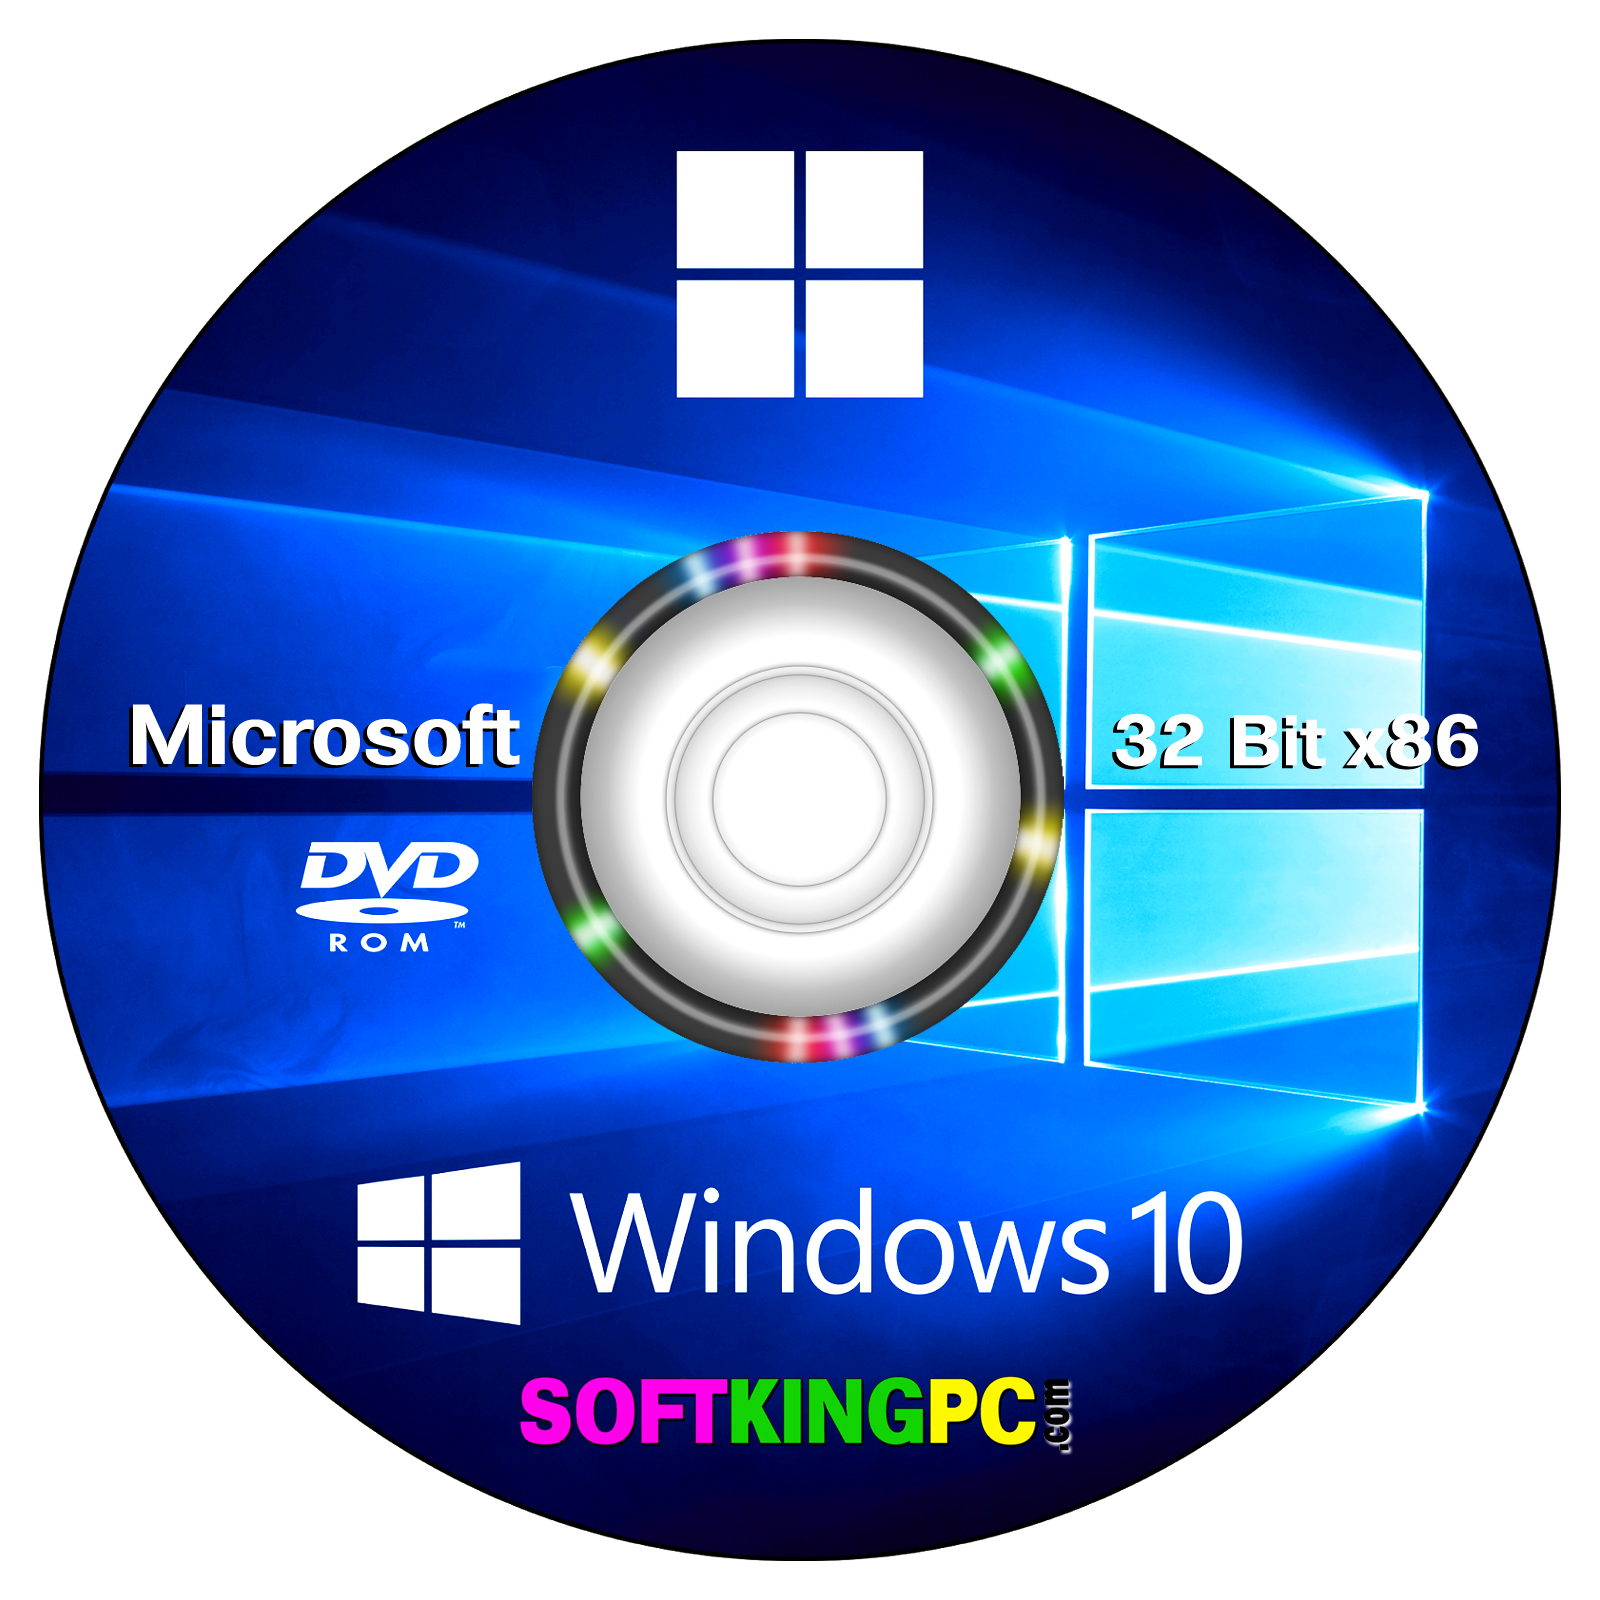 Free Windows 10 Iso Download Mac - fingersupport